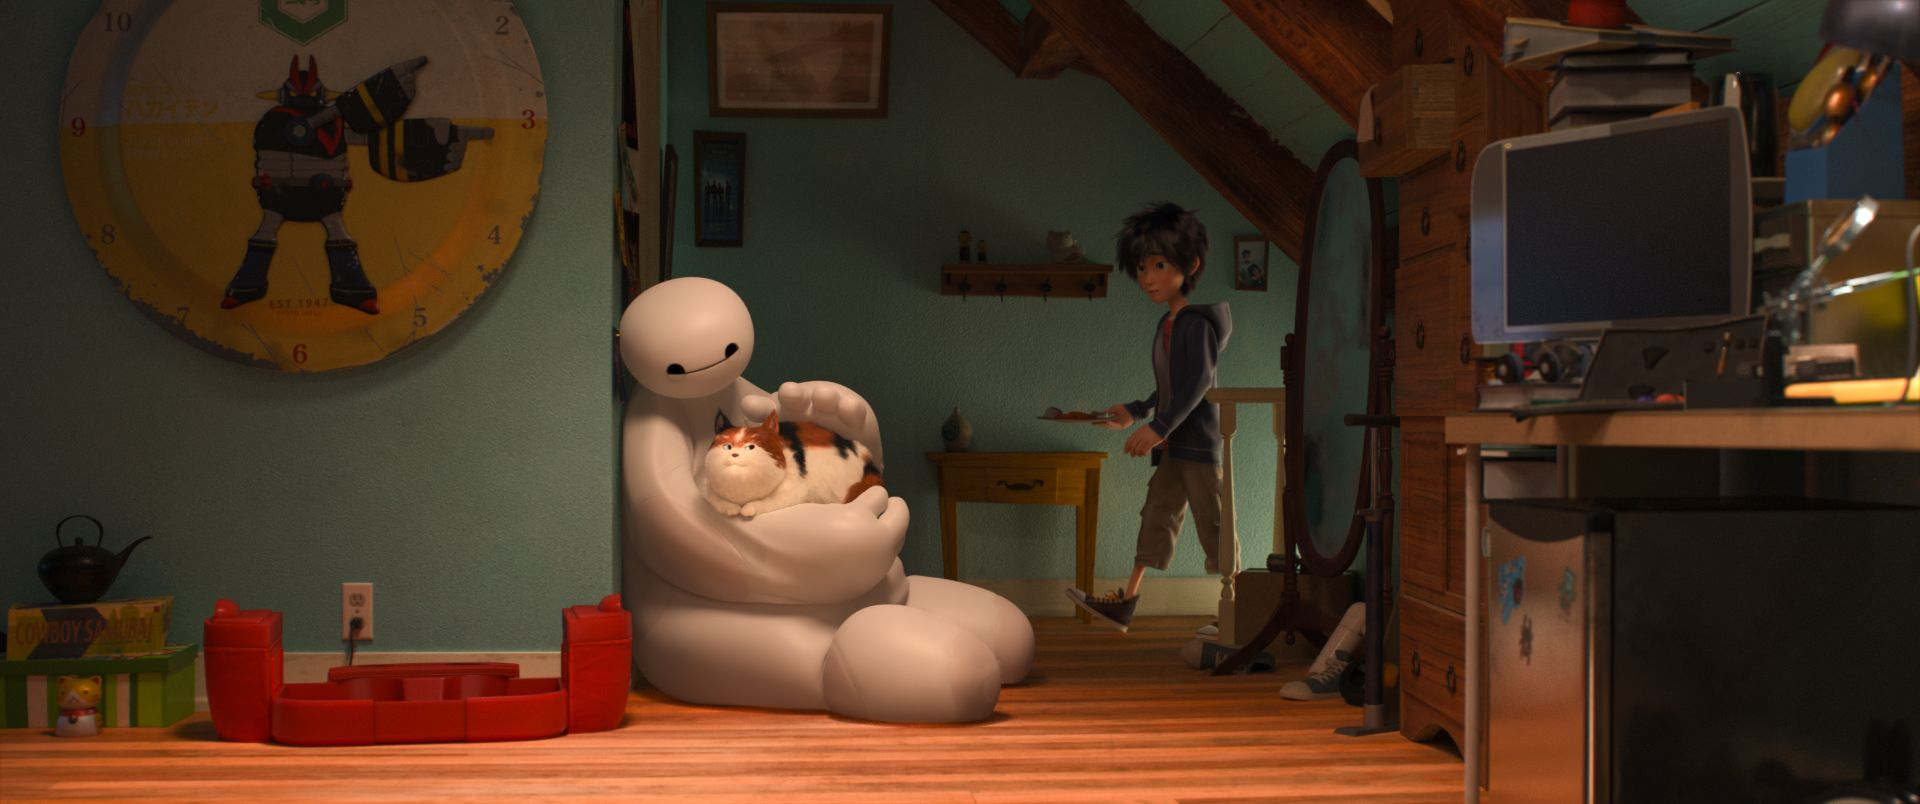 big hero 6 movie baymax - photo #26